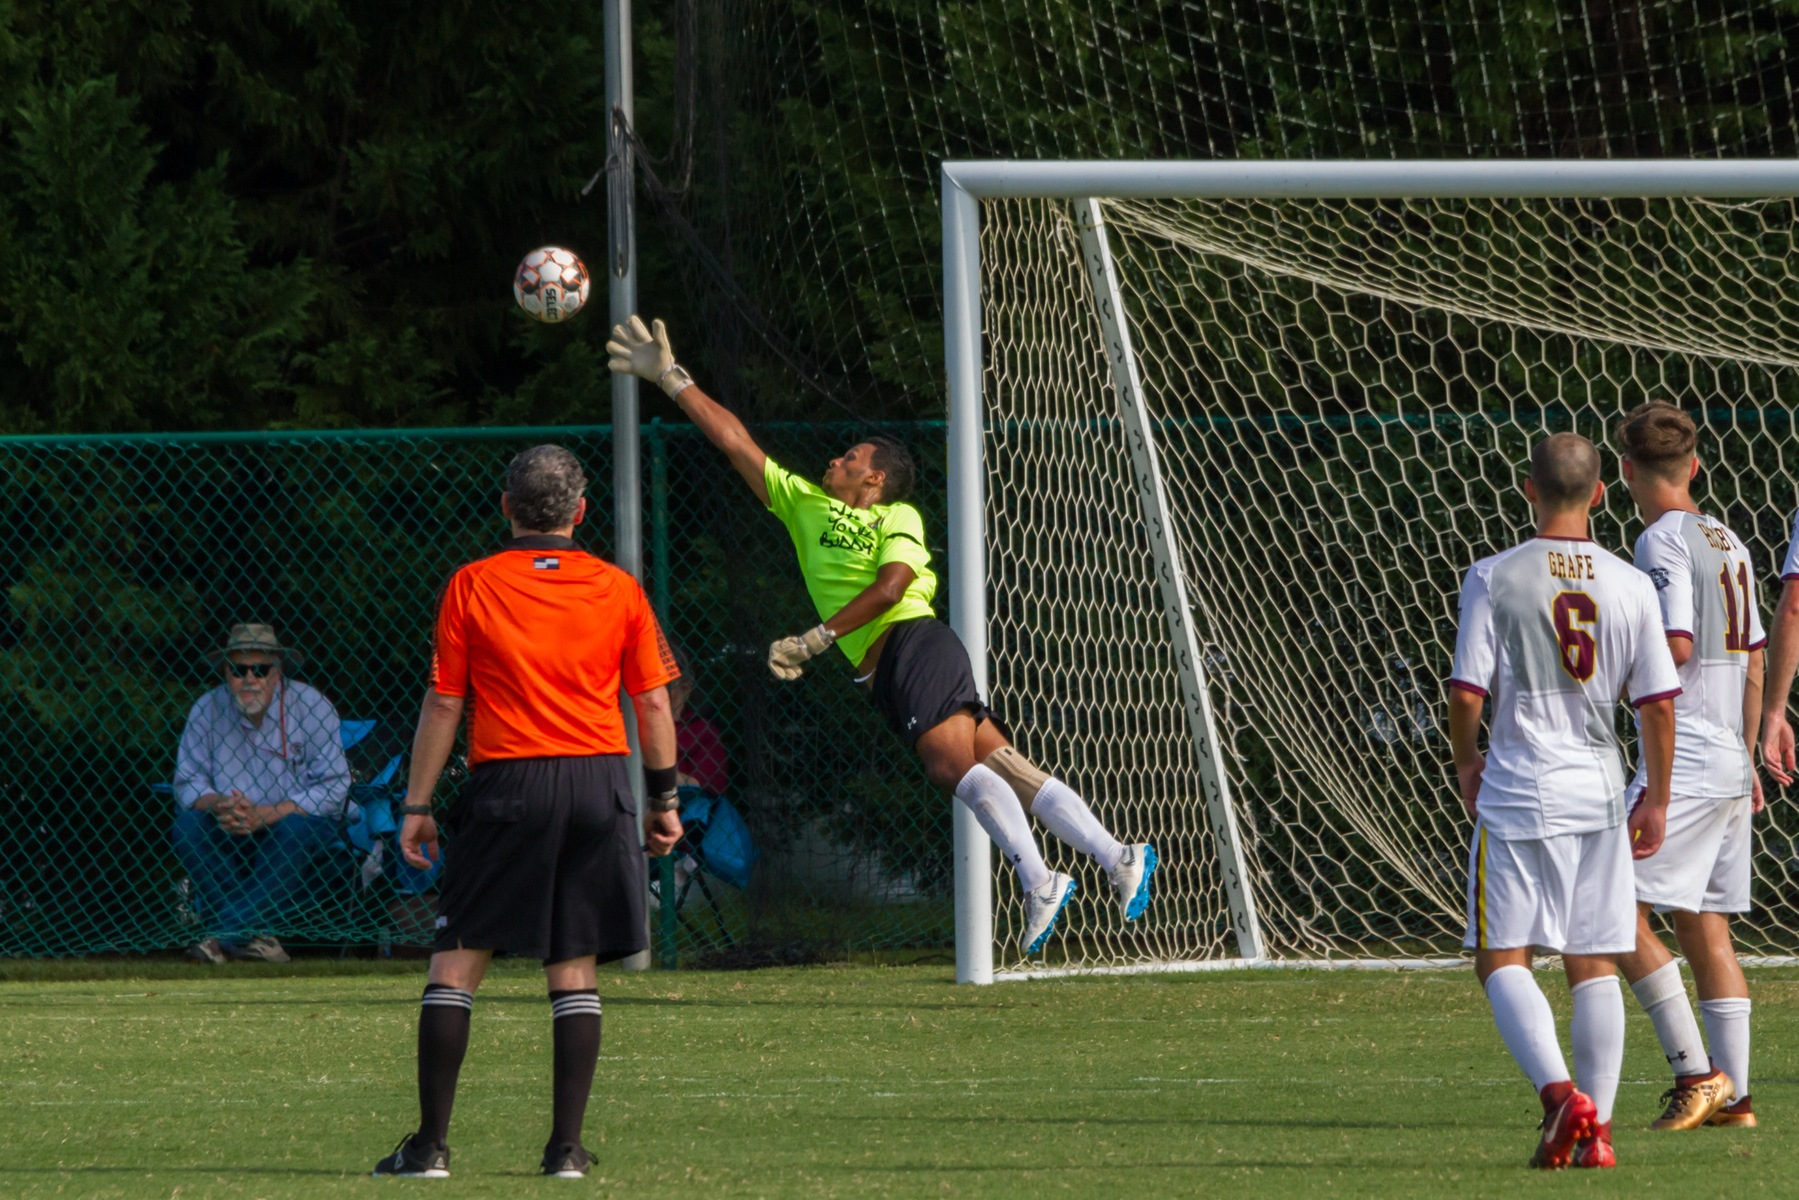 Pearl River Community College goalkeeper Kobe Lie makes a save during the Wildcats' 4-0 win over Itawamba Community College on Wednesday, Aug. 22, 2018. (BRETT RUSS/PRCC ATHLETICS)